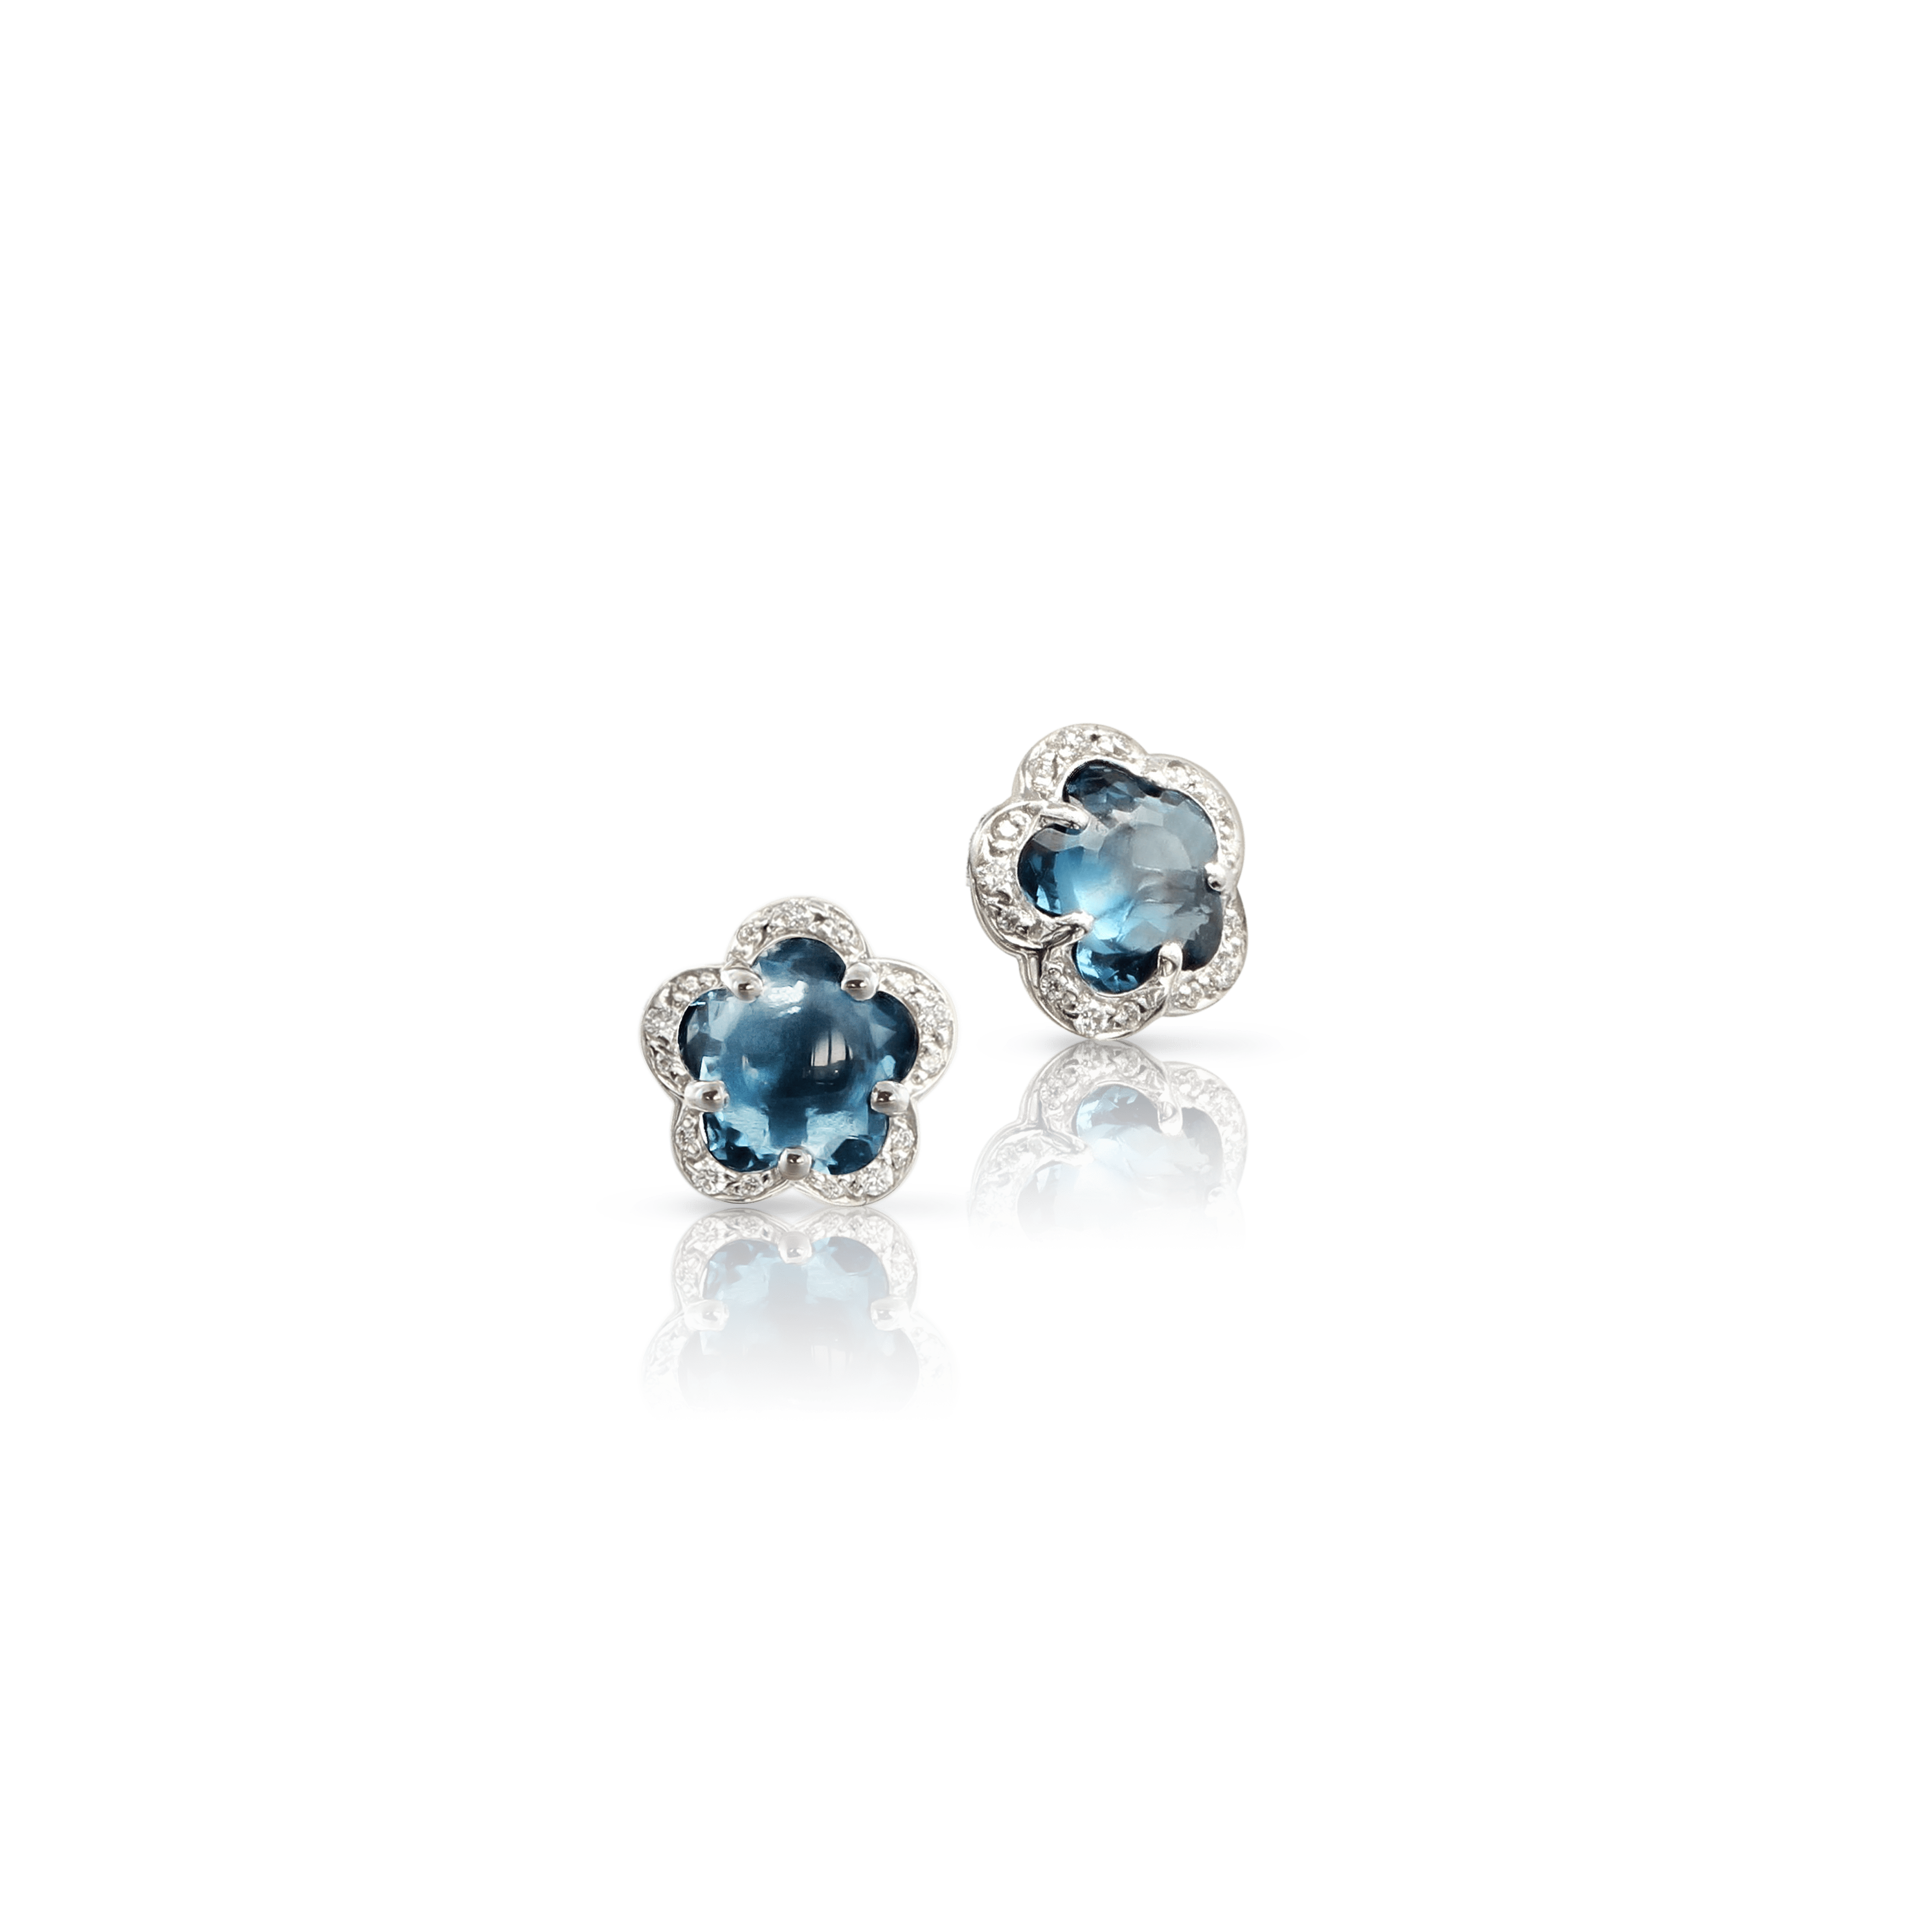 18k White Gold Figlia dei Fiori Earrings with London Blue Topaz and Diamonds